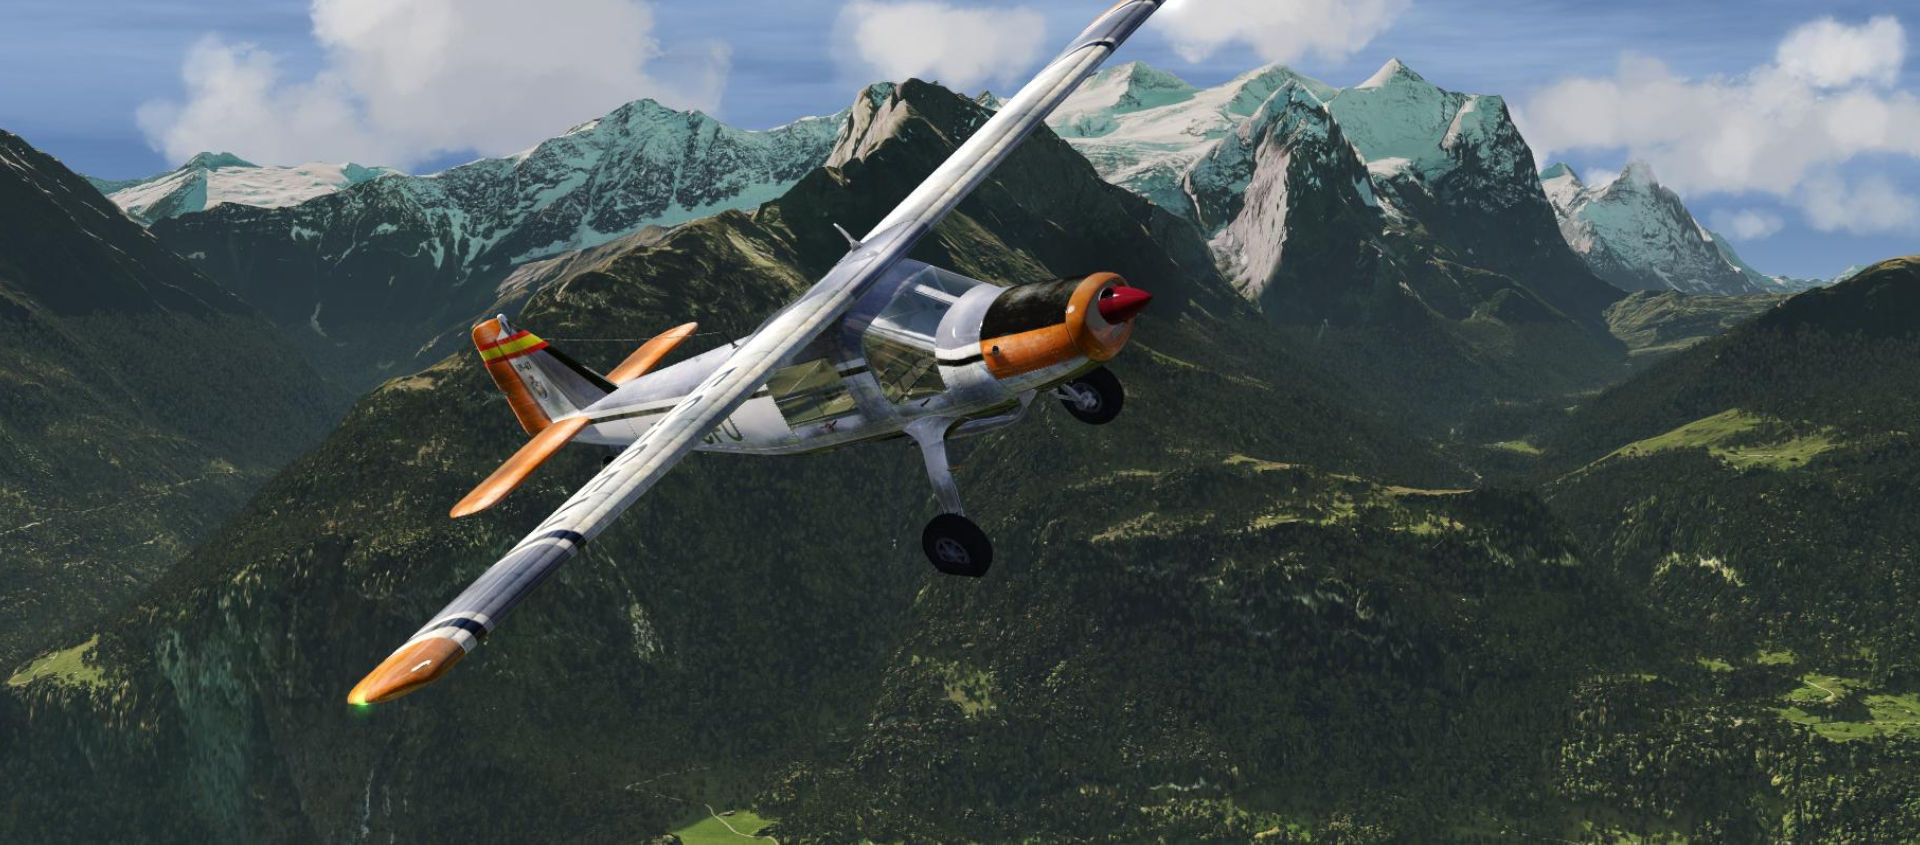 Aerofly FS 2 Dornier Do 27 Freeware